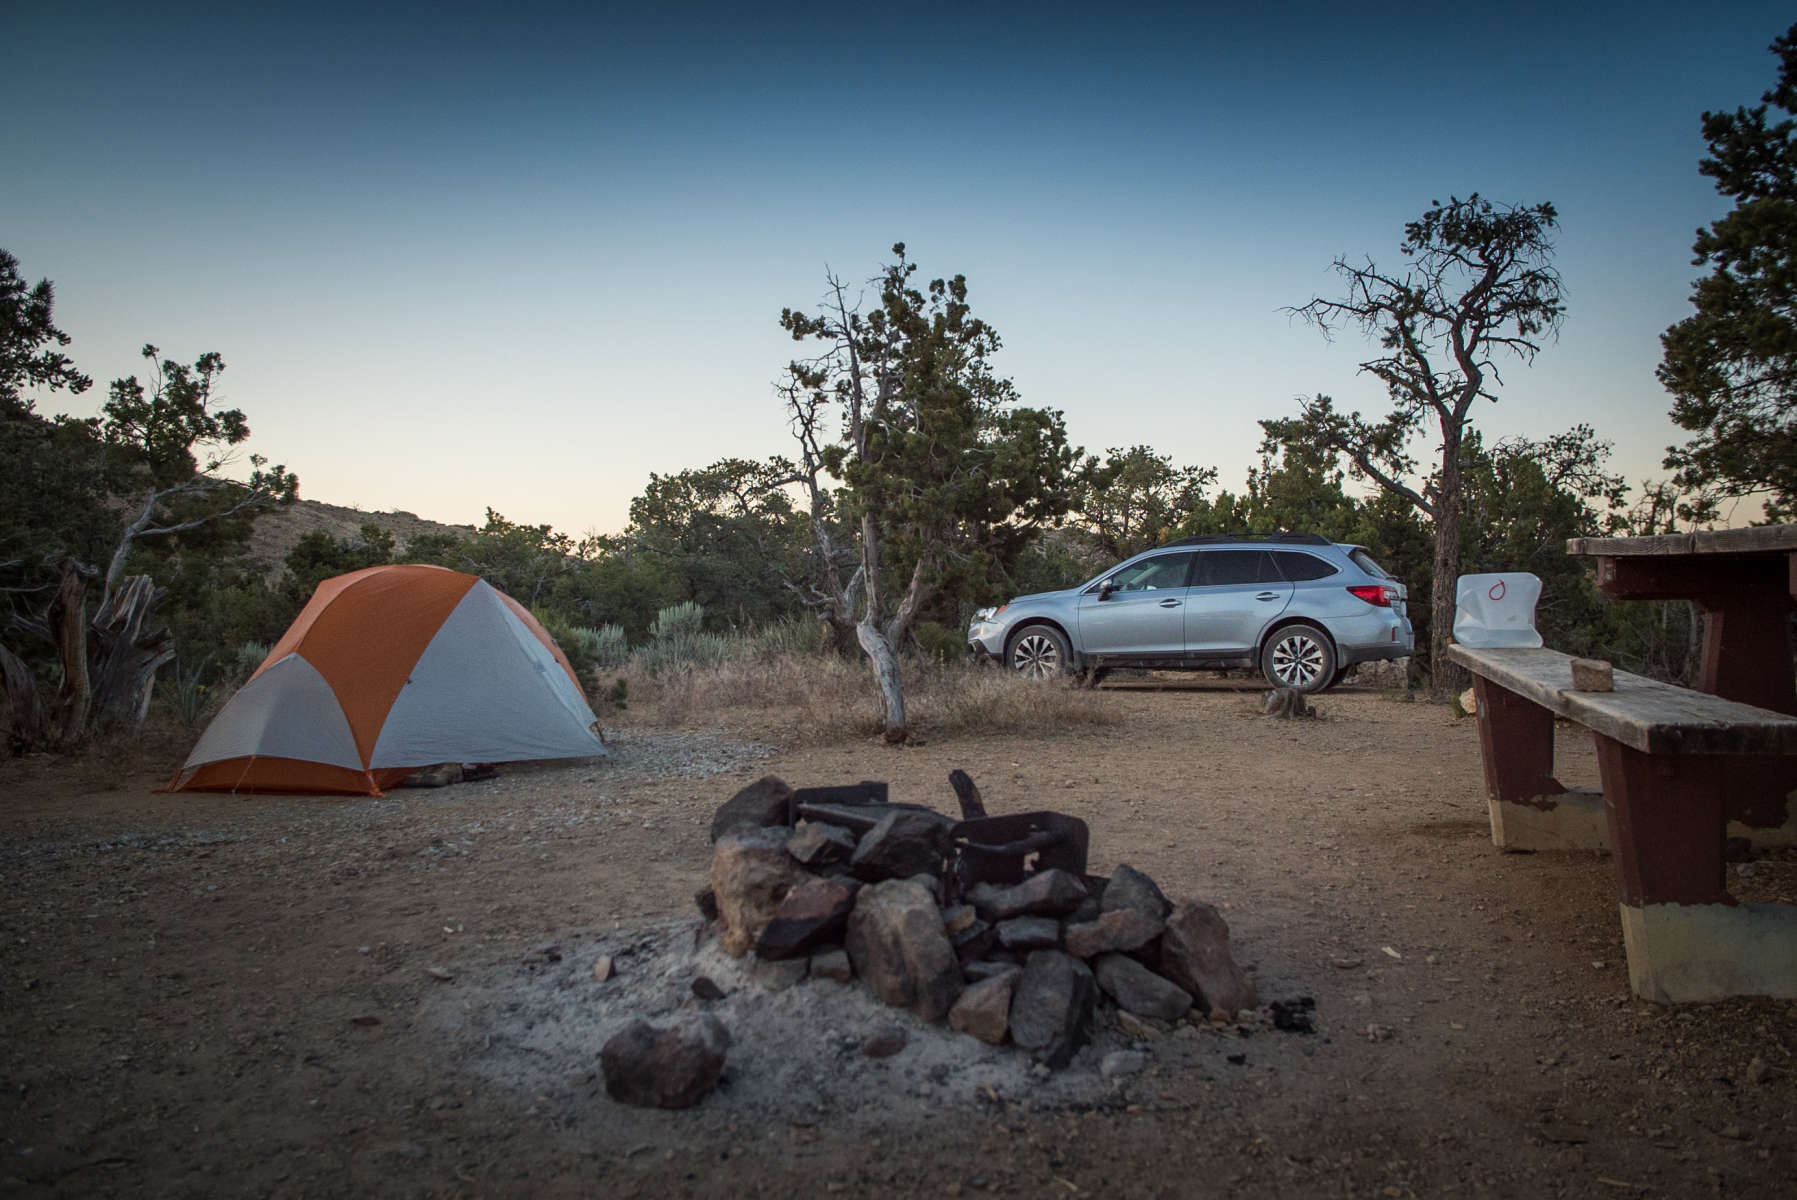 Glamping In California >> Mid Hills Campground, Mojave, CA: 1 Hipcamper review and 11 photos